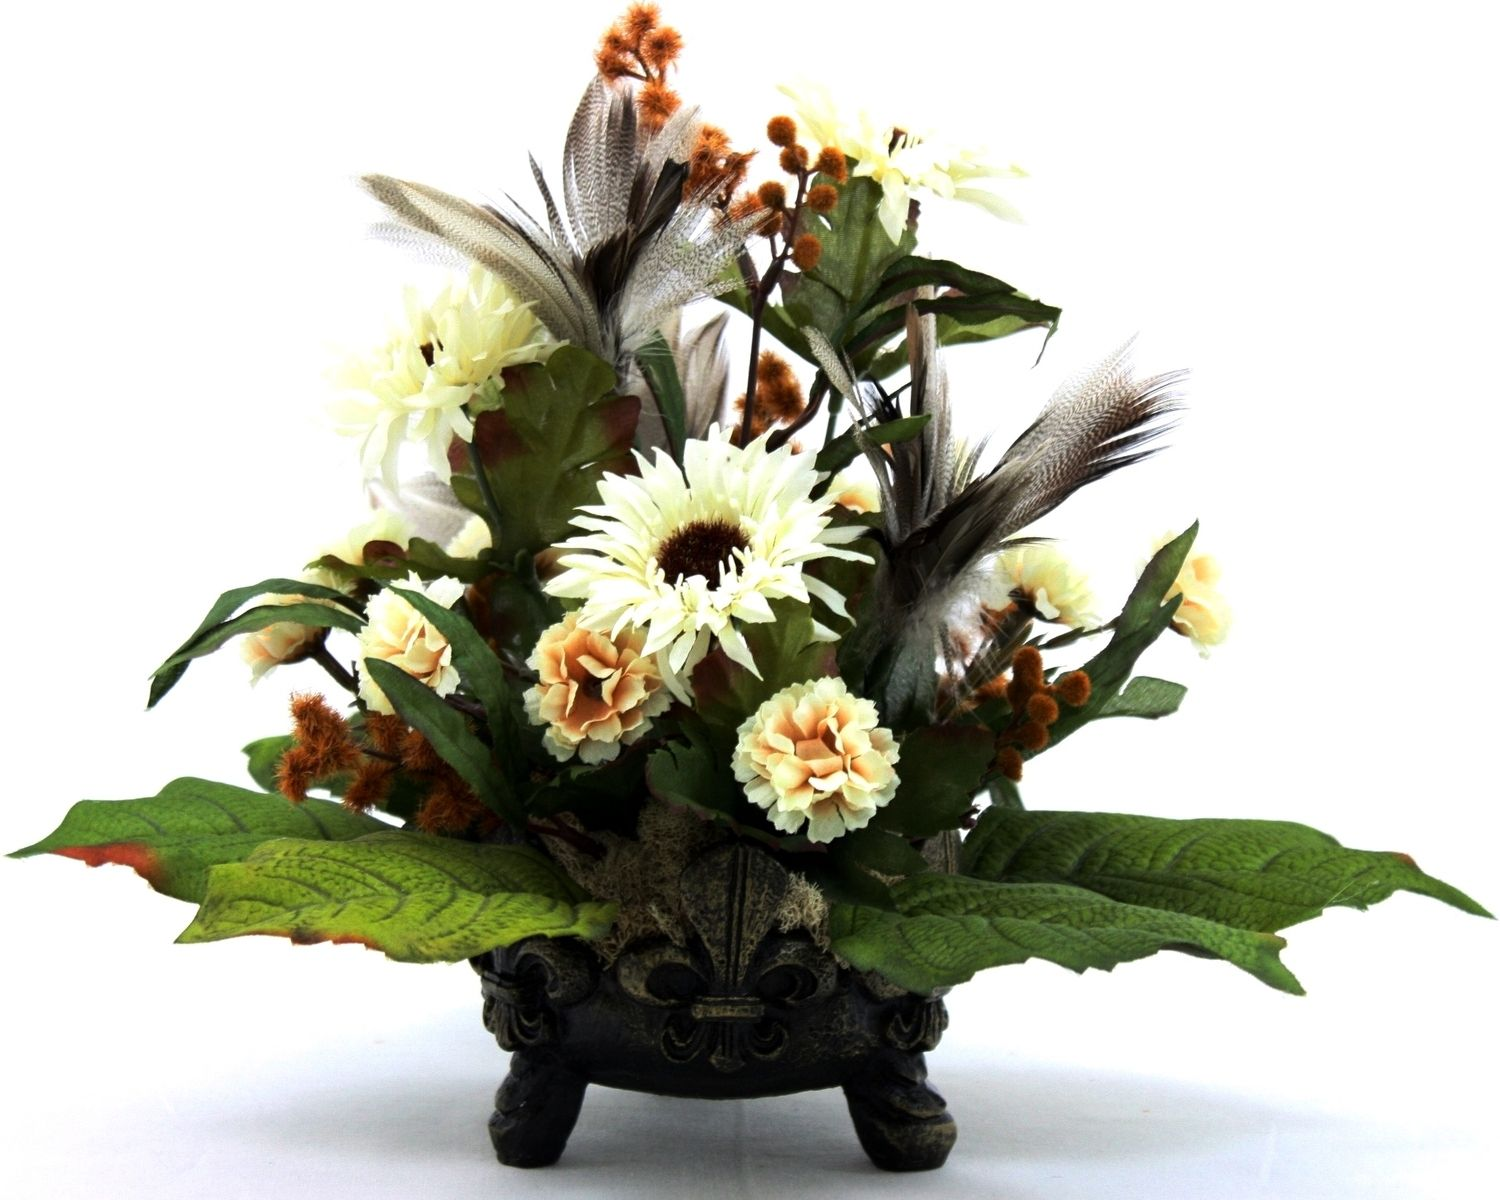 Hand Crafted Unique Silk Flower Arrangement Table Centerpiece